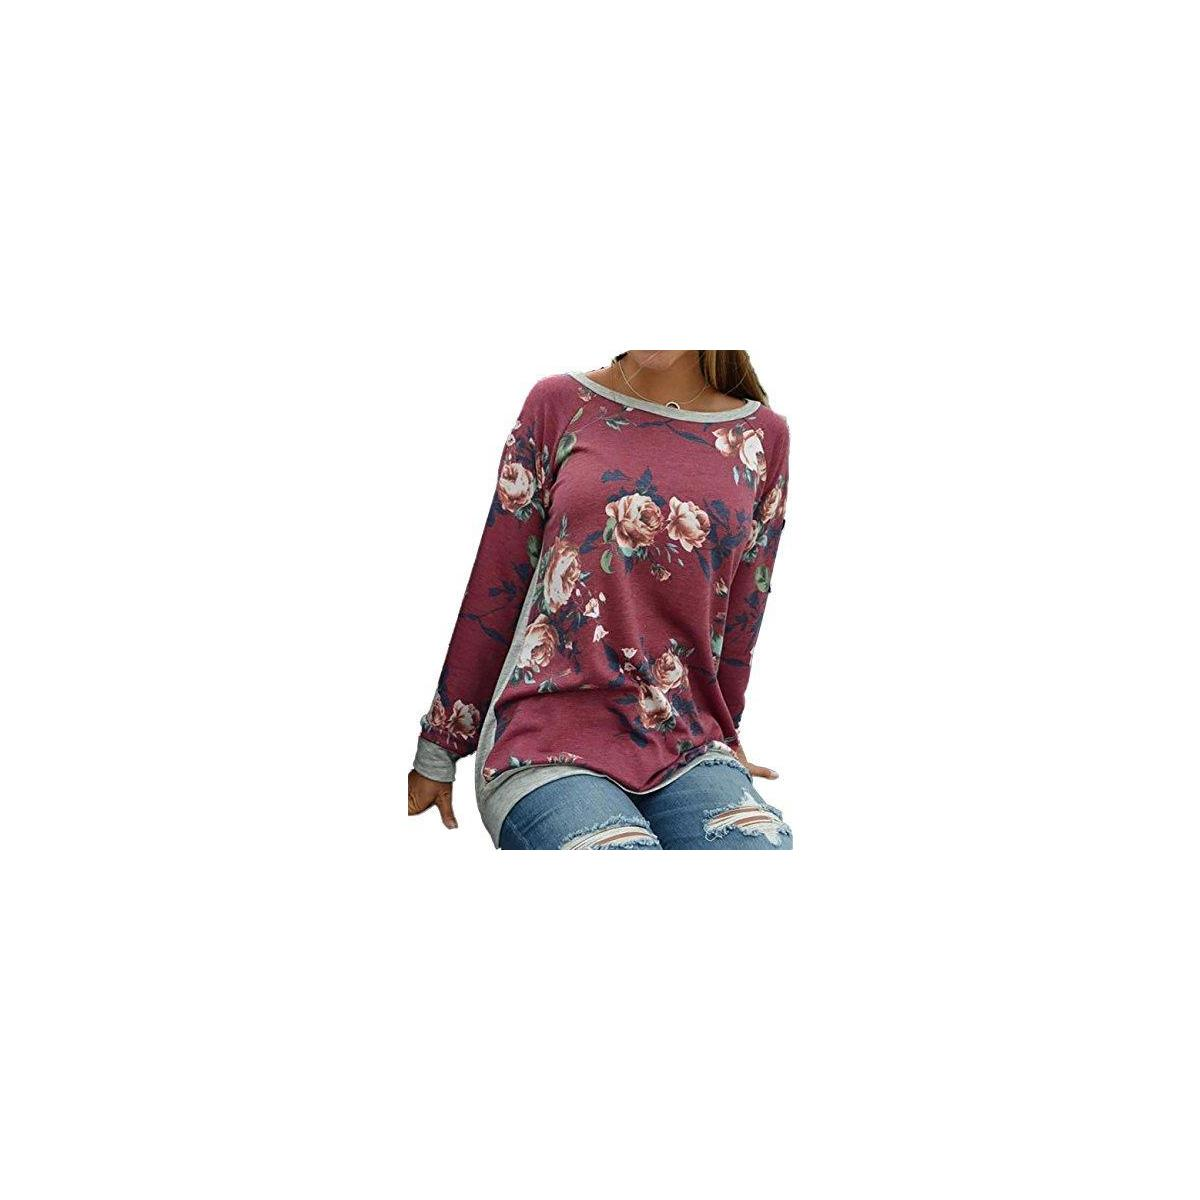 Women's O Neck Long Sleeve Floral Print T-Shirts Casual Blouse Tops